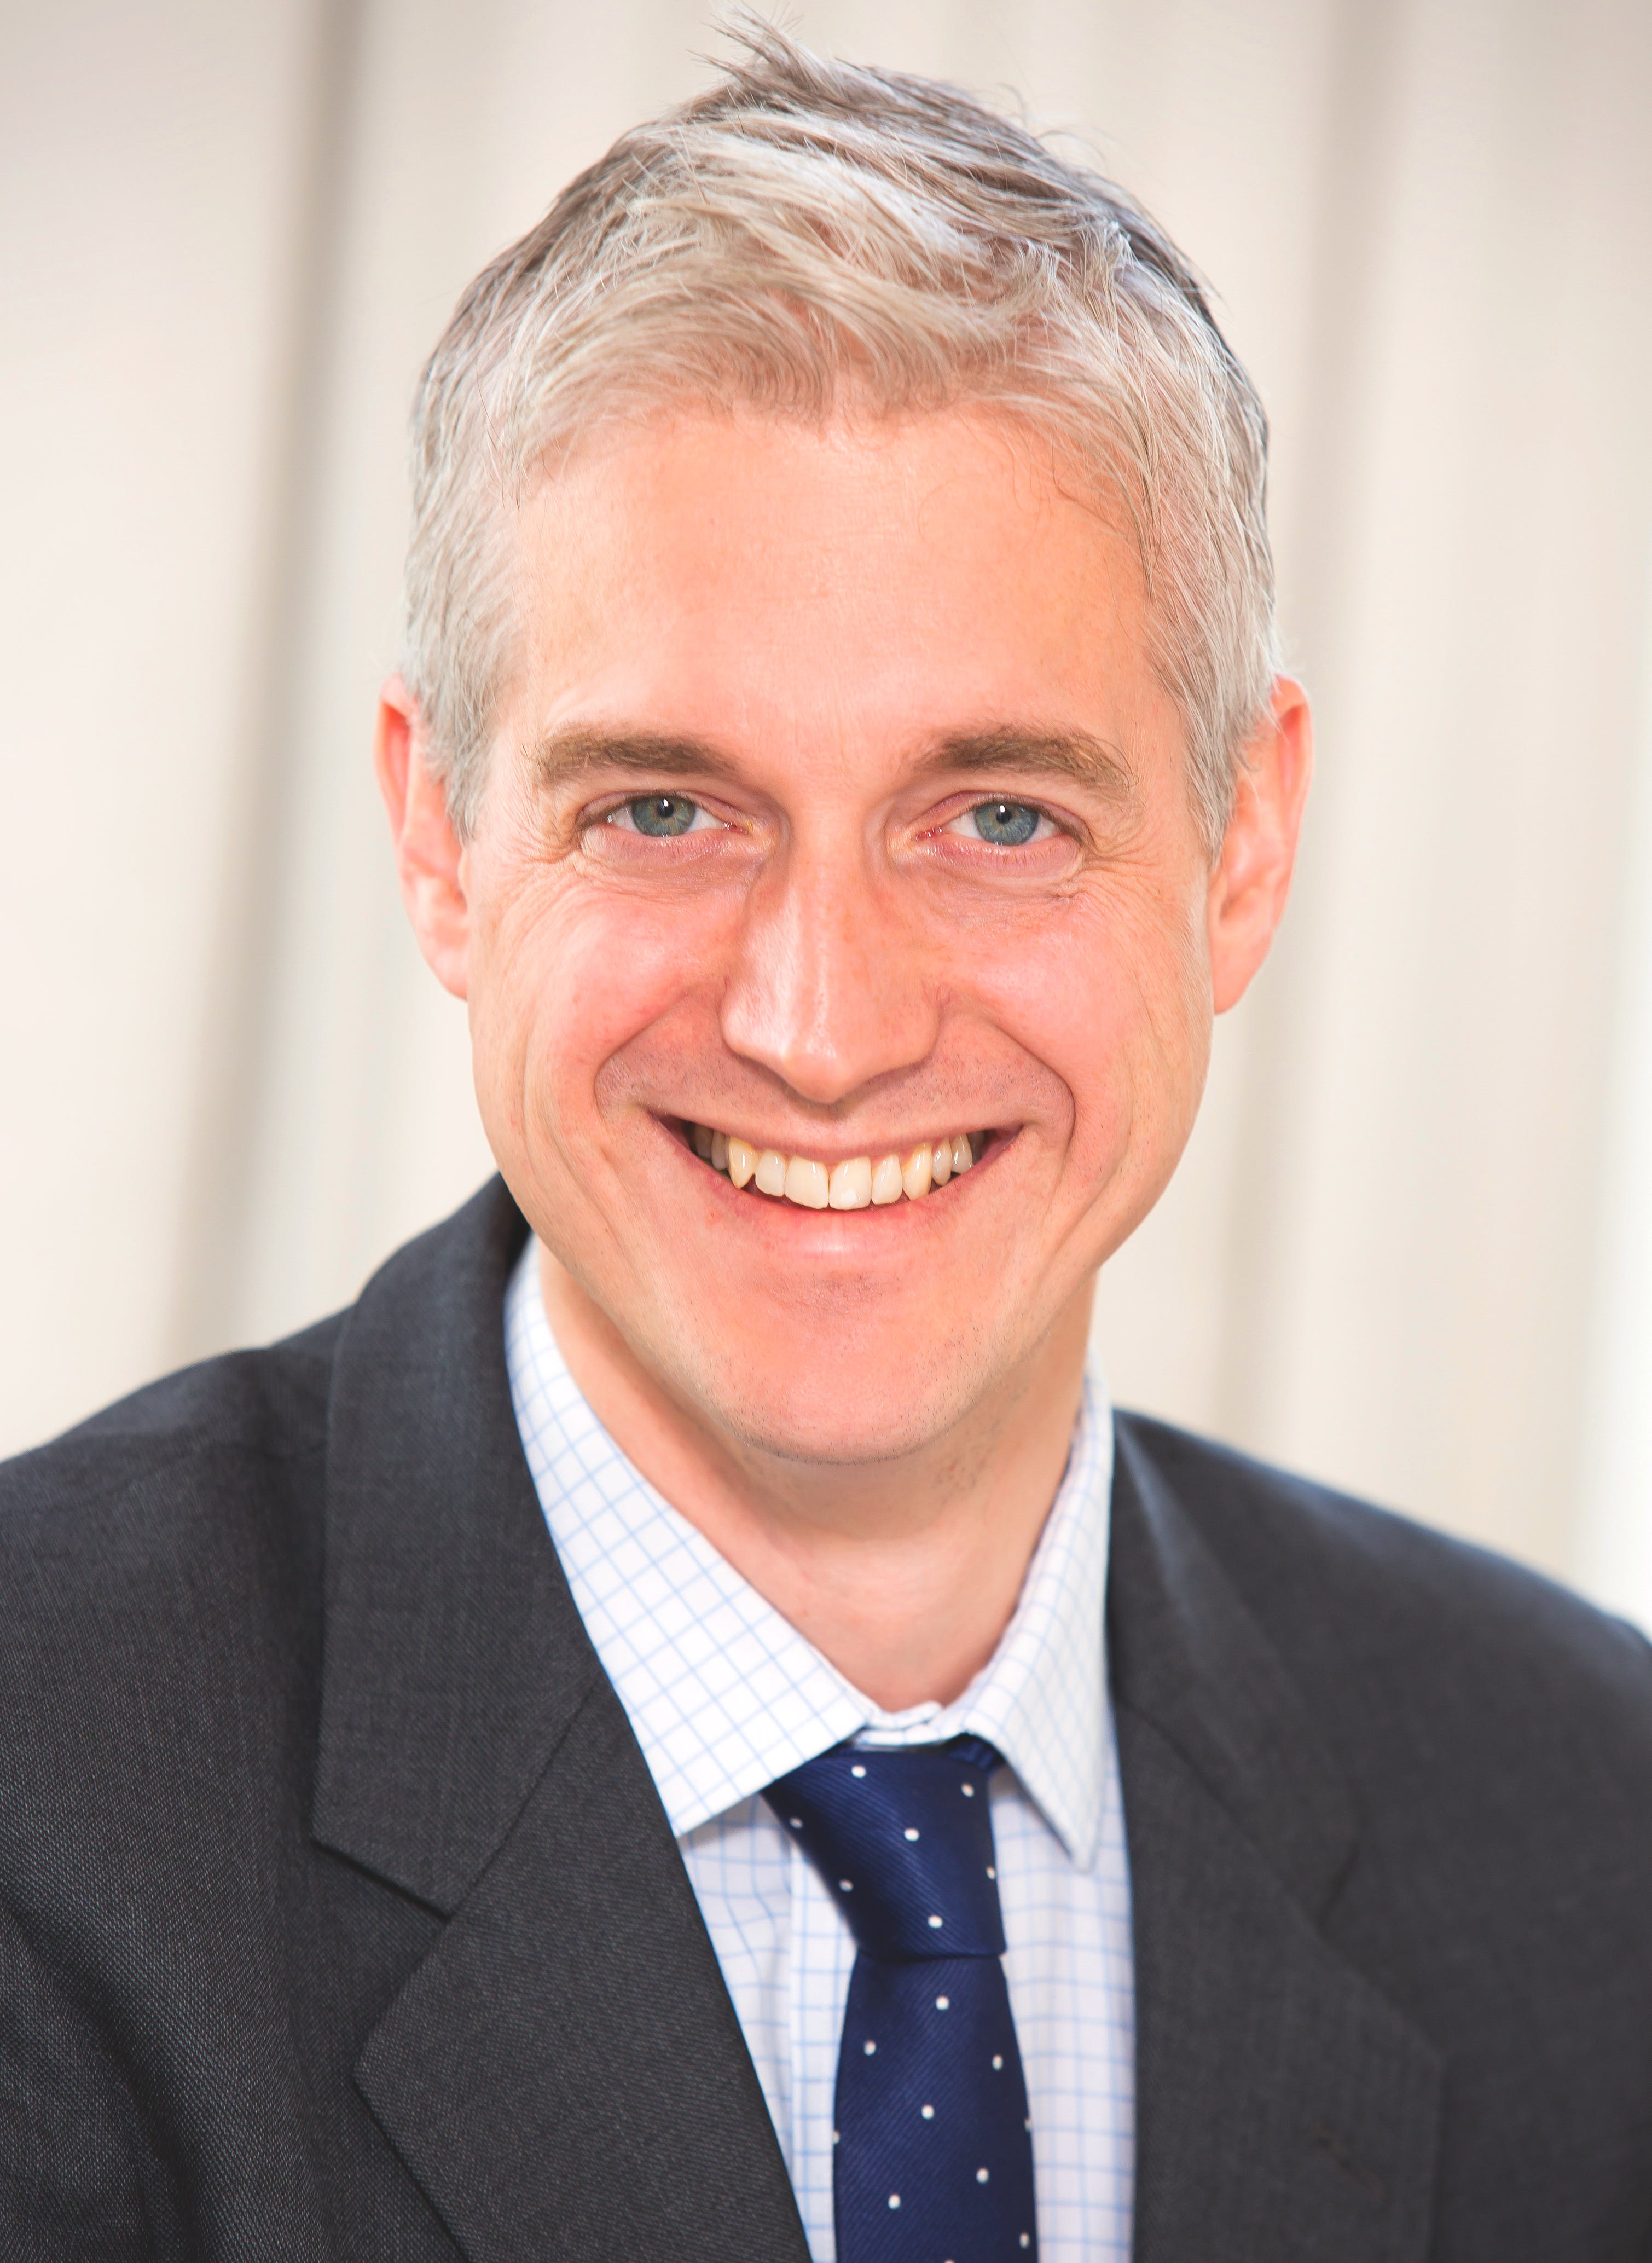 Picture of Jonathan Haley to illustrate promotion and associates making partner